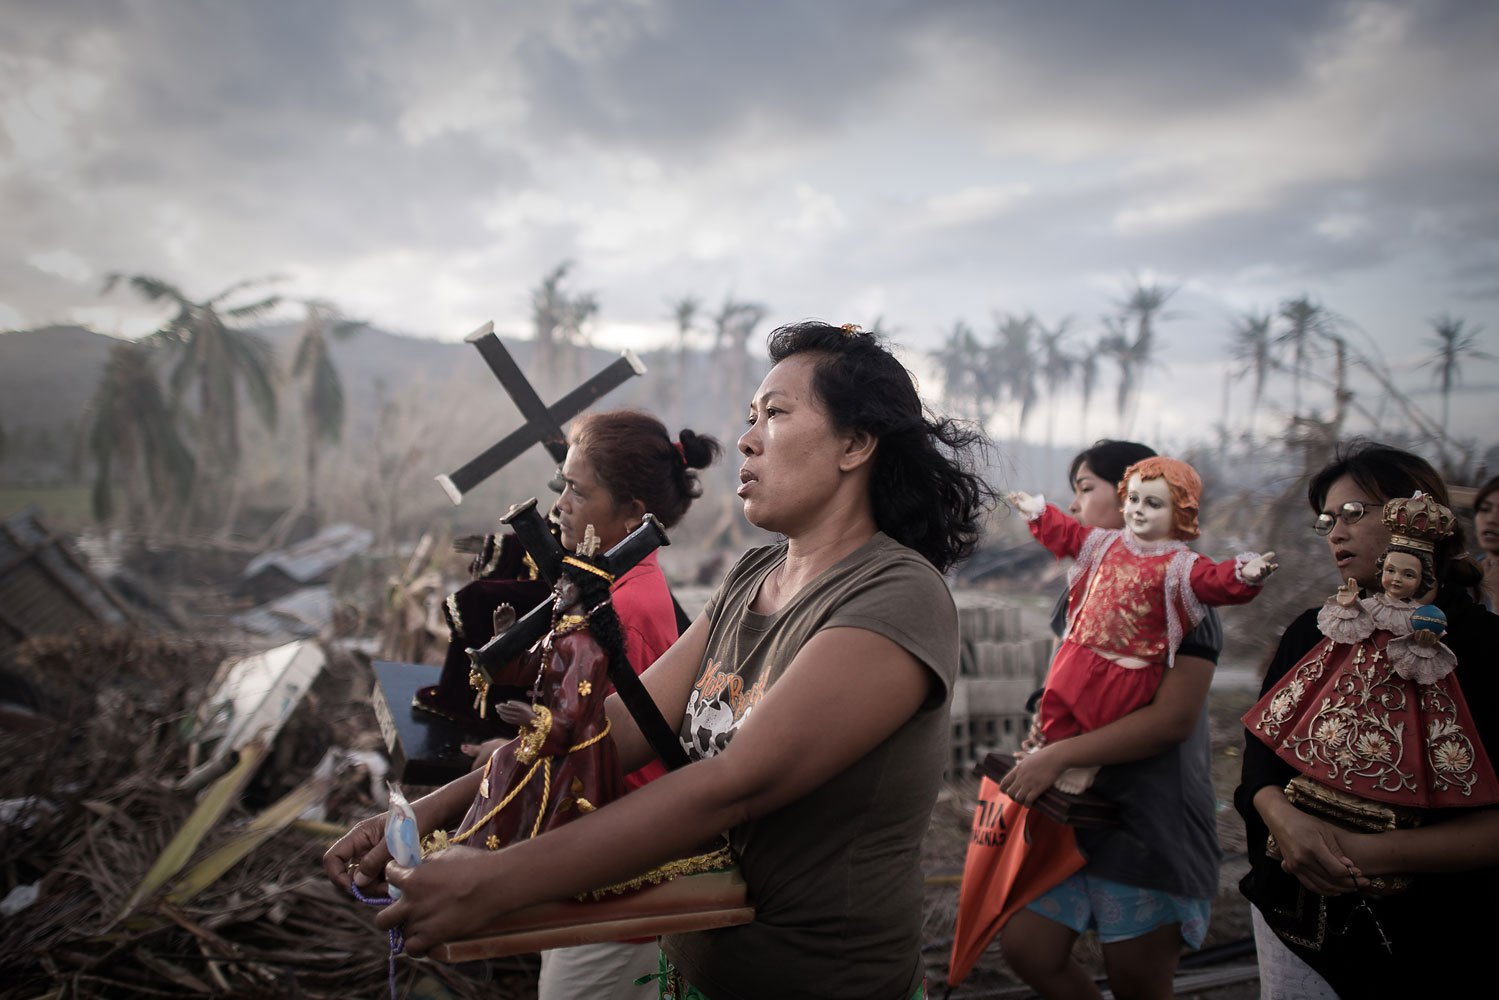 Survivors of Typhoon Haiyan march during a religious procession in Tolosa on the eastern Philippine island of Leyte on November 18, 2013.